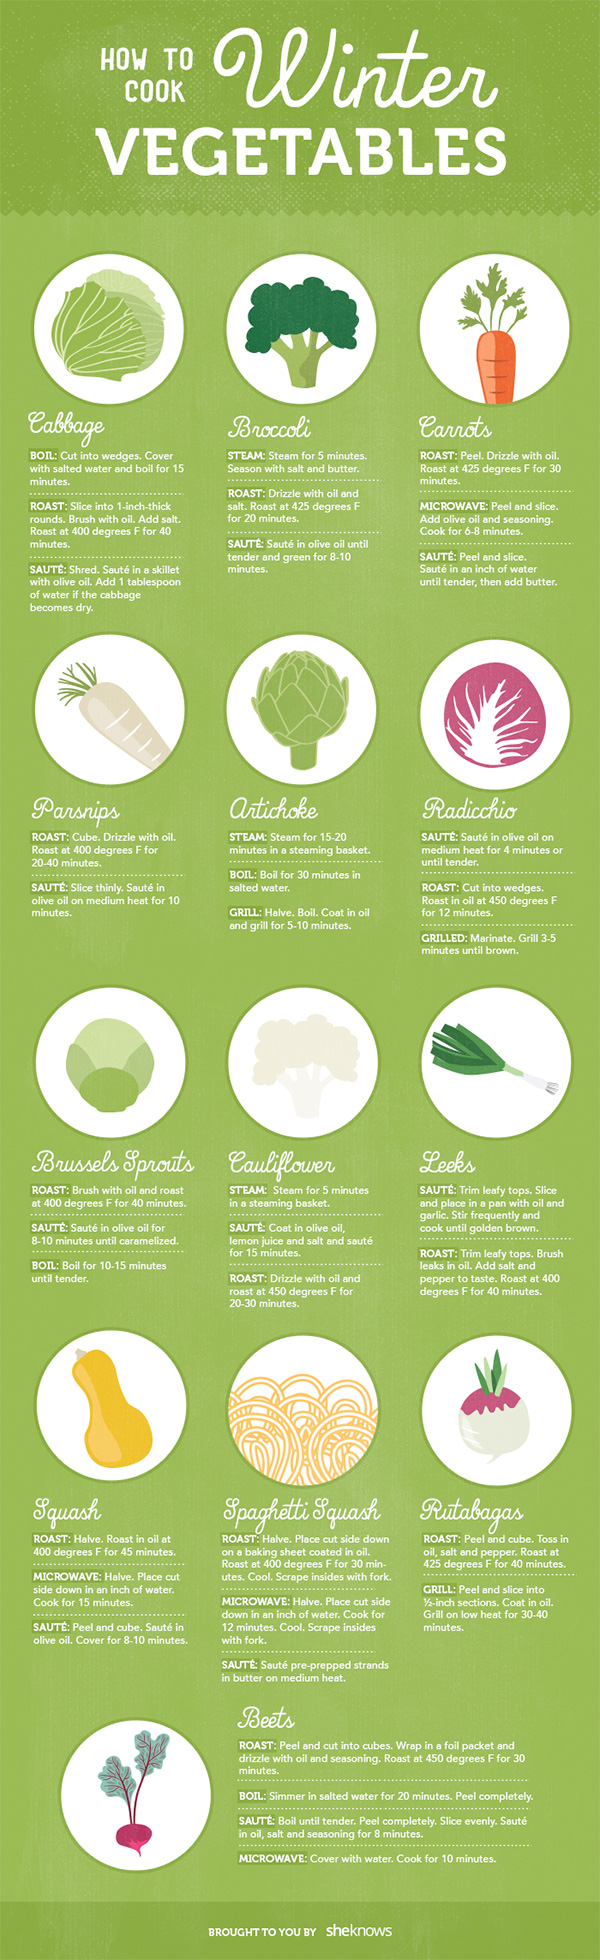 "Image by <a href=""http://www.sheknows.com/food-and-recipes/articles/1058167/winter-vegetables-infographic"">SheKnows</a>"